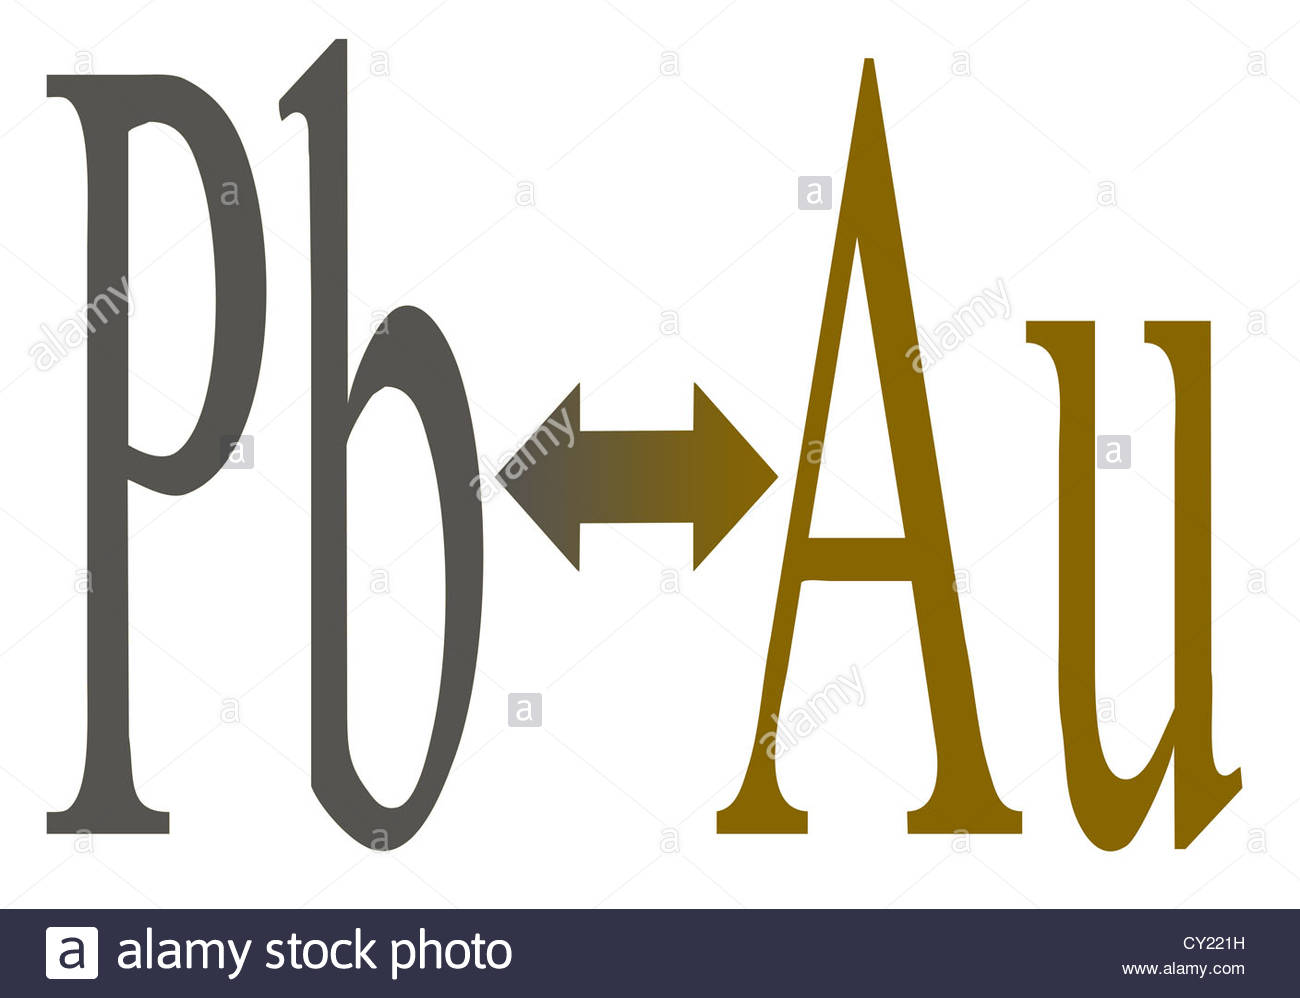 Alchemy - Turning base metals (lead) into Gold - Stock Image